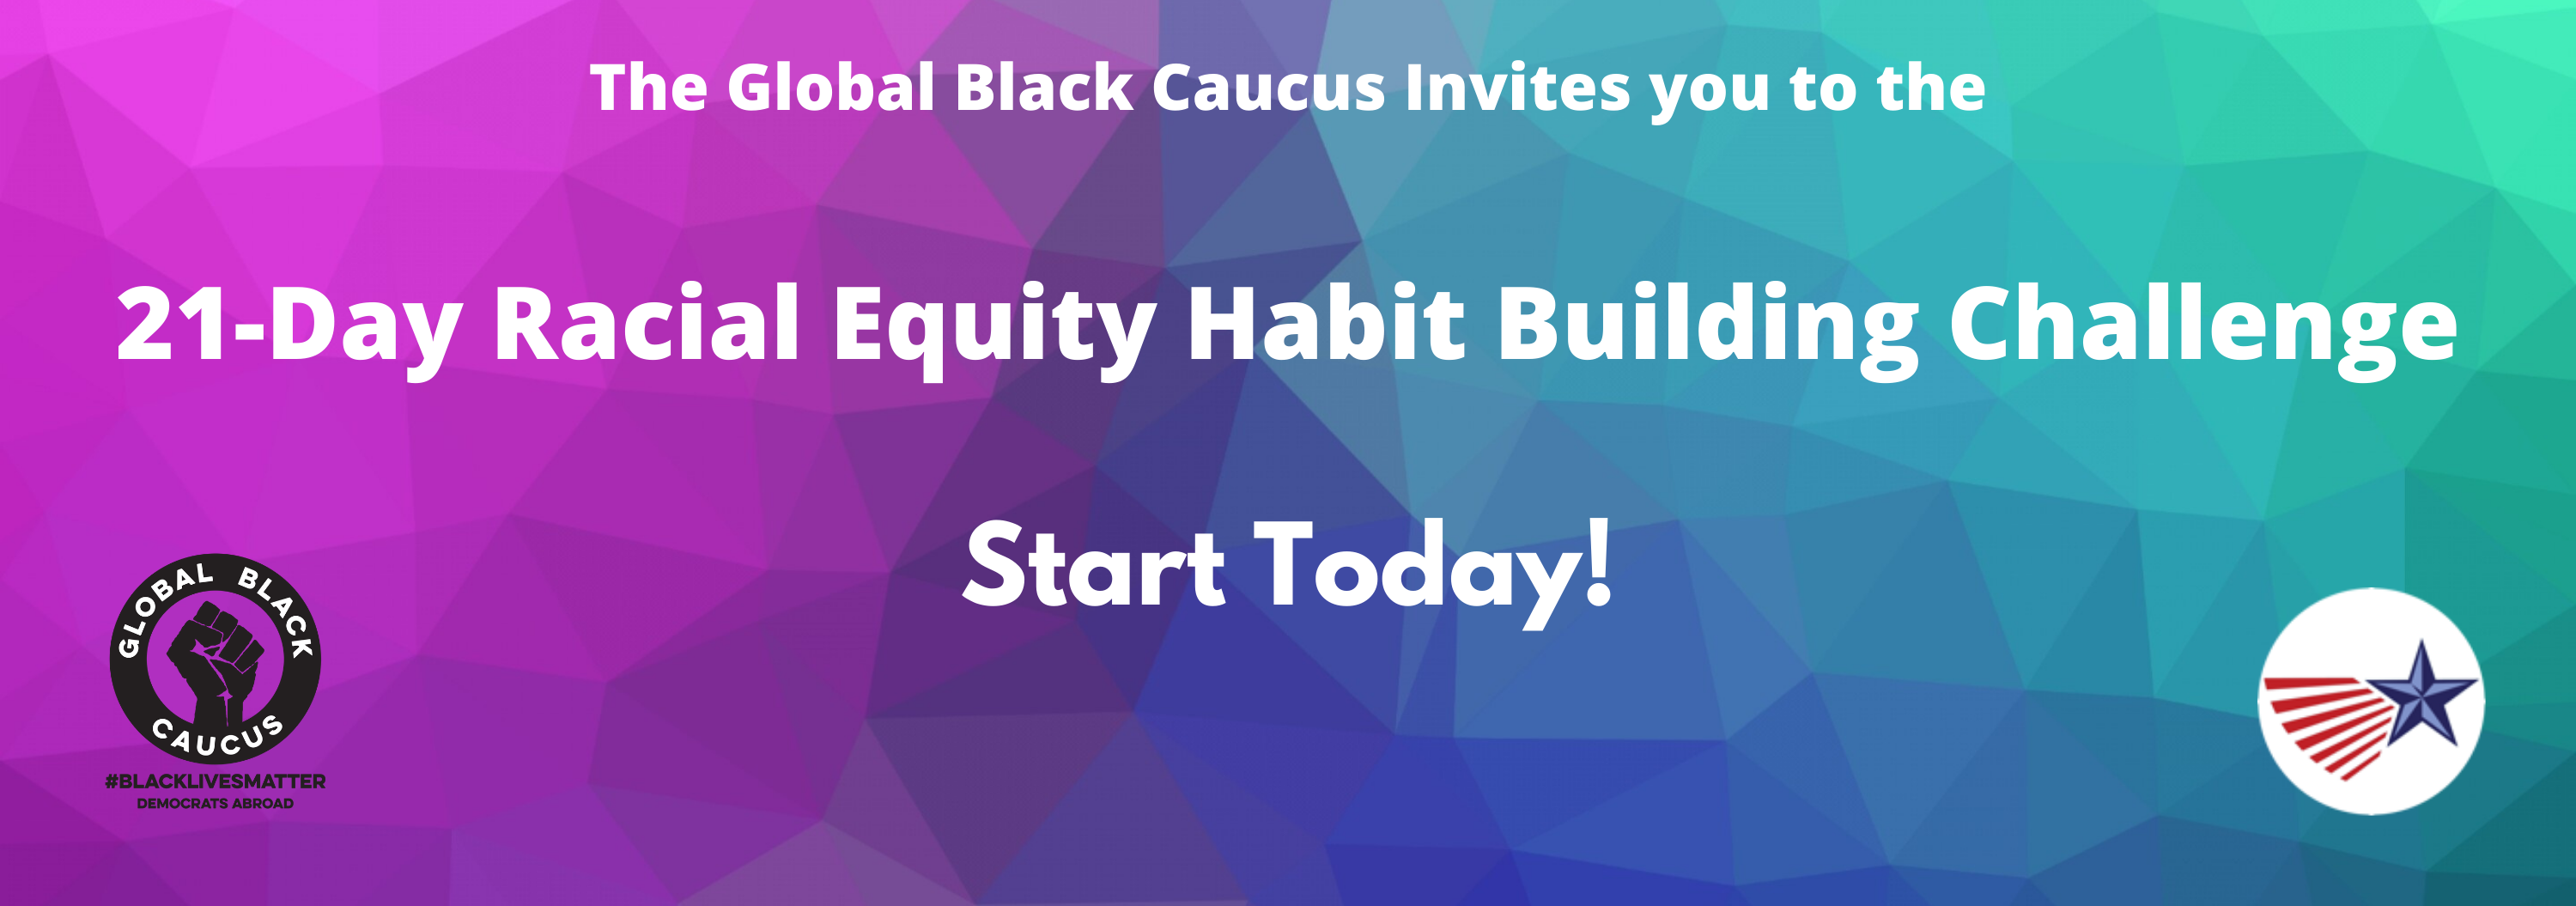 invite_Day_Racial_Equity_Habit_Building_Challenge_.png